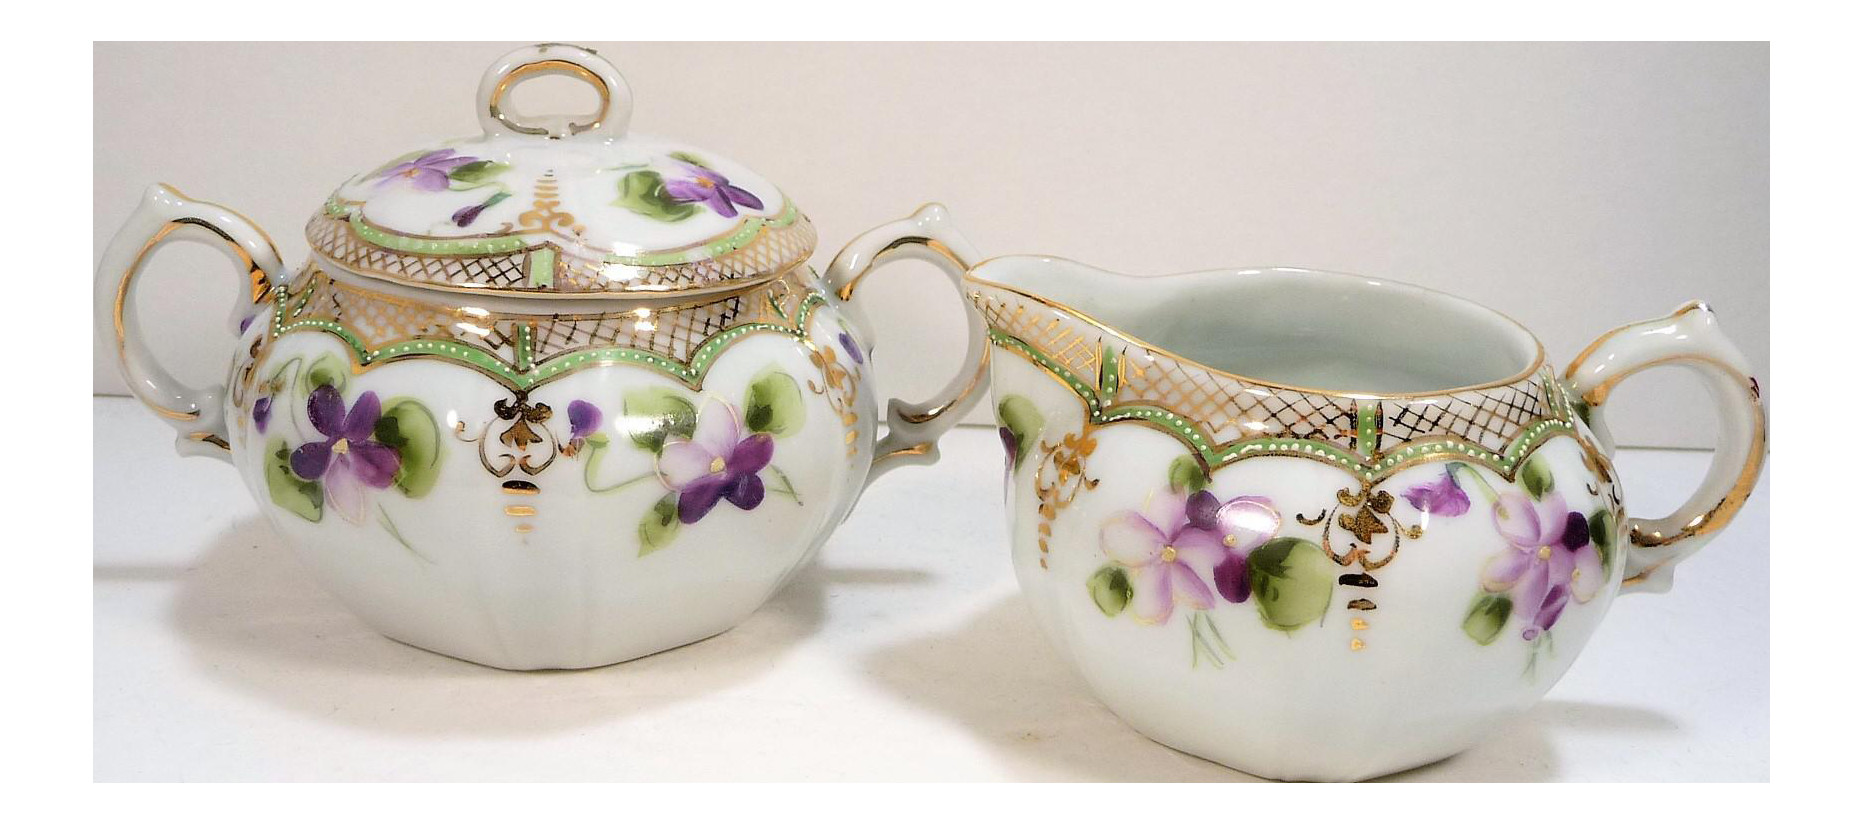 nippon vase marks of antique nippon porcelain creamer sugar bowl set a pair chairish throughout antique nippon porcelain creamer and sugar bowl set a pair 3760